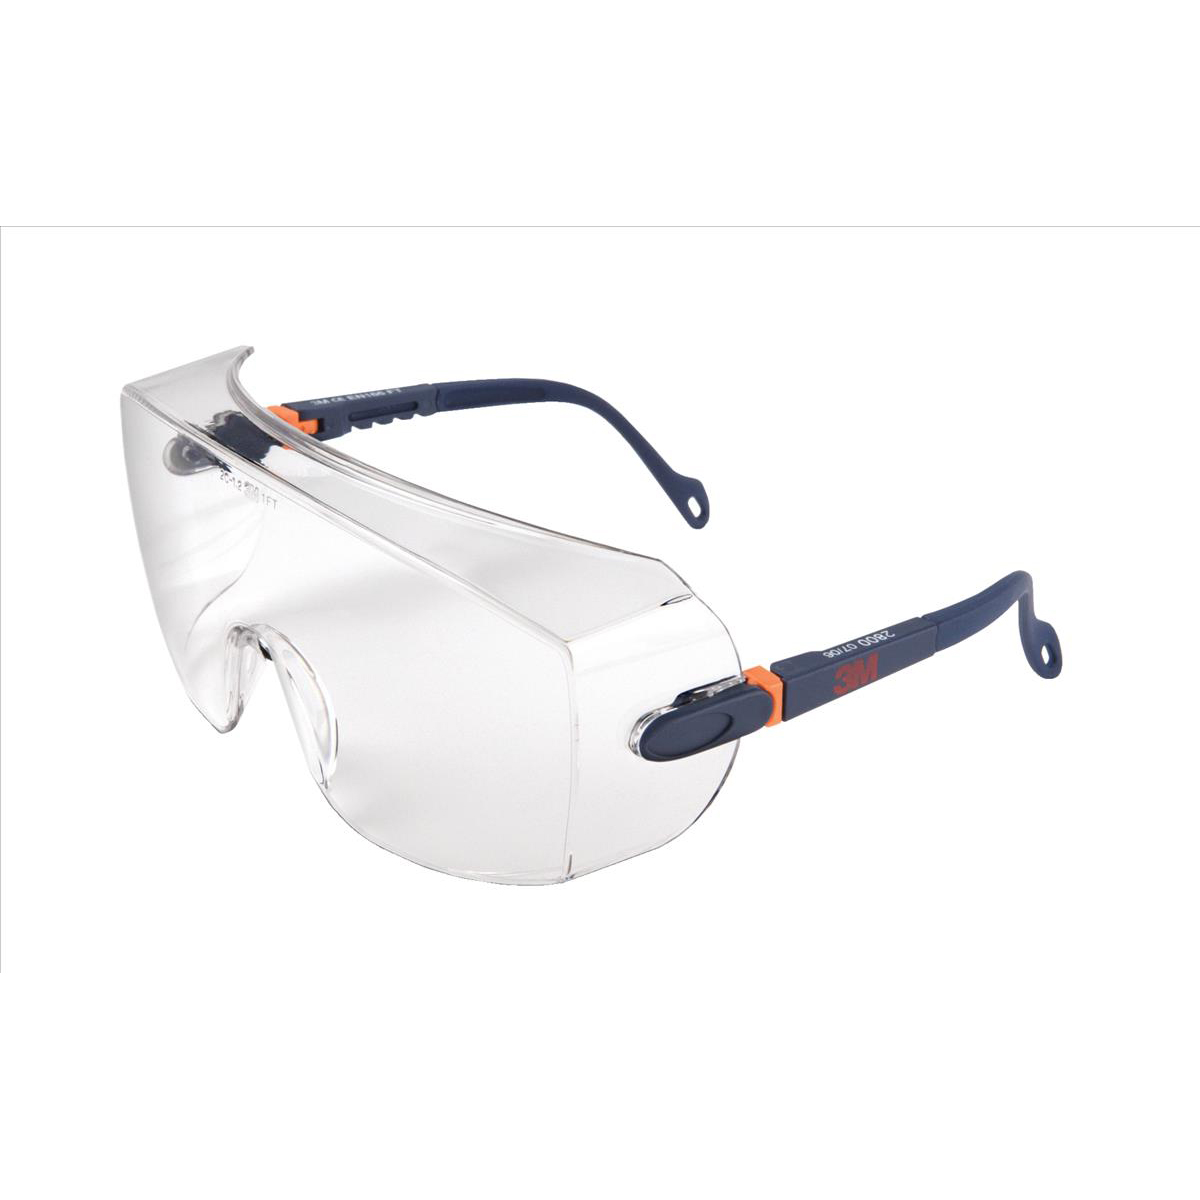 Image for 3M Classic Line Over Safety Spectacles Optical Class 1 Impact Resistant Integral Brow Guard Ref 2800 CLO